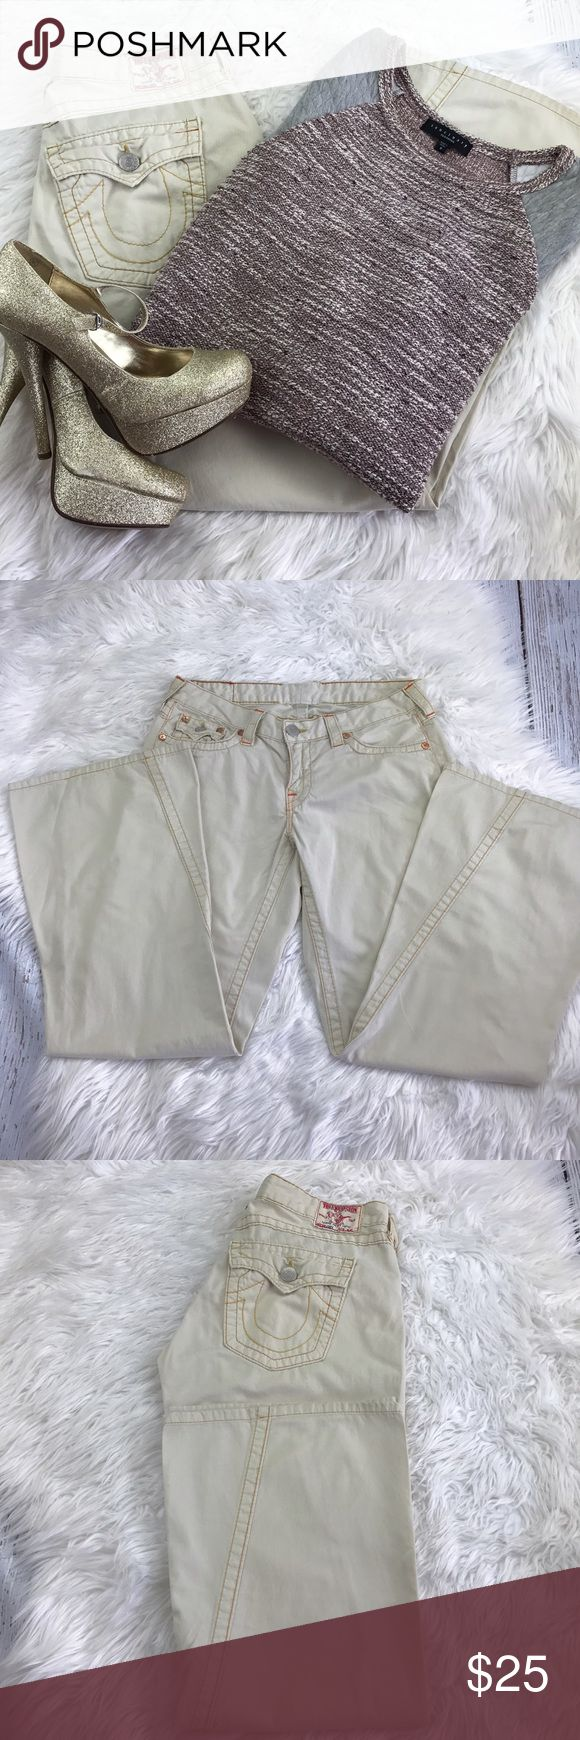 "💕SALE💕True Religion Lightweight Cream Joeys Awesome True Religion Lightweight Cream Joeys 30"" Inseam 8"" Rise 16"" Laying flat across front. Tags have been removed so I'm not sure of size so be sure to check measurements. True Religion Jeans Flare & Wide Leg"